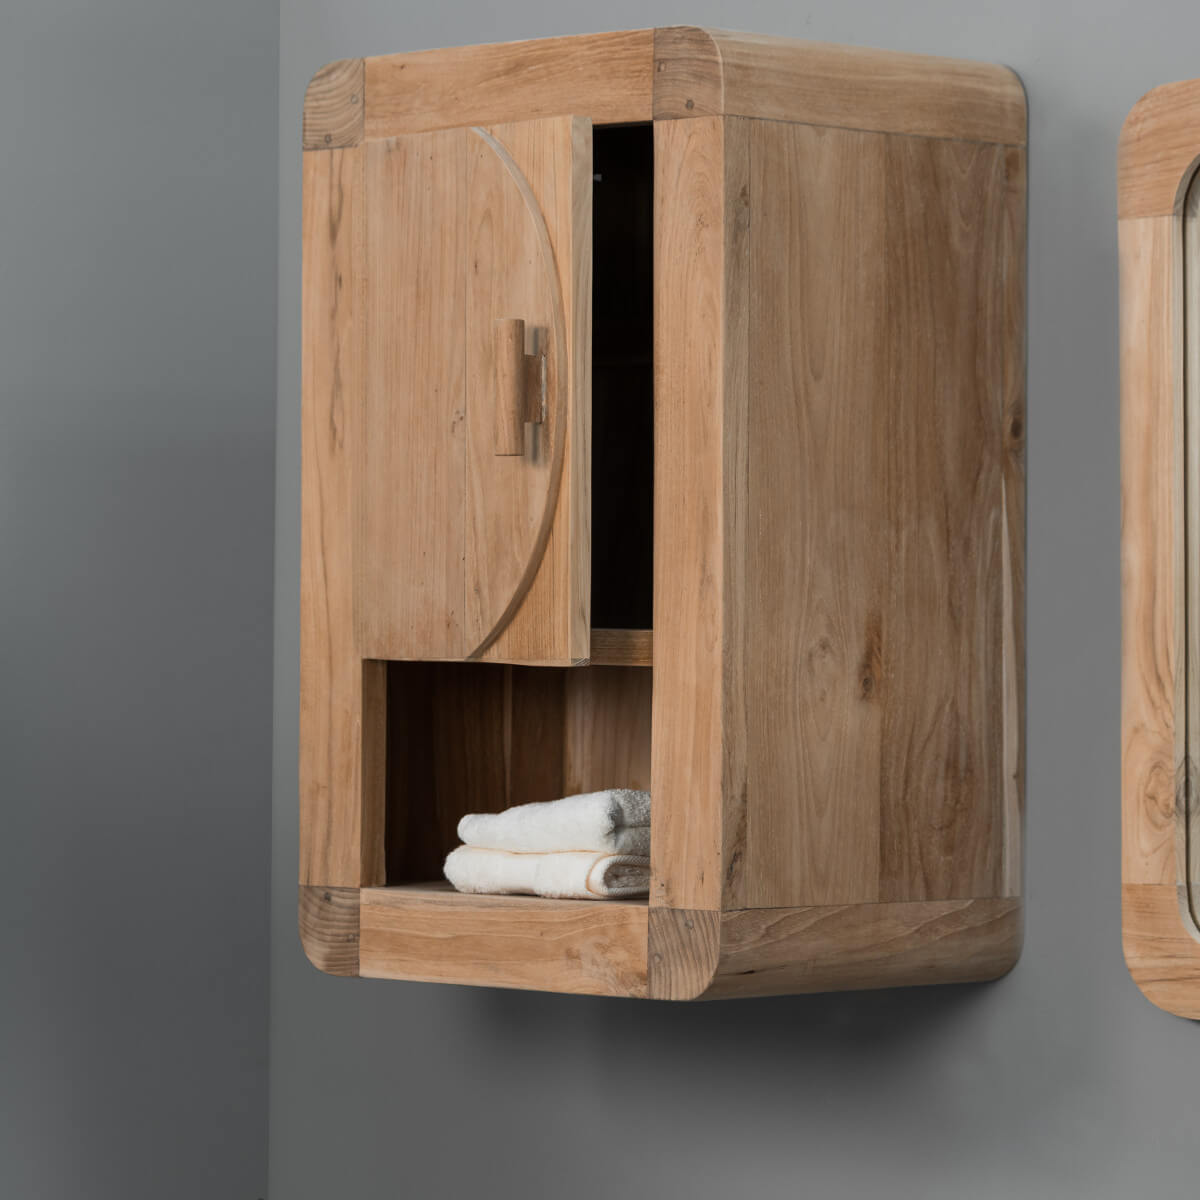 armoire de toilette en bois teck massif r tro rectangle naturel h 44 cm. Black Bedroom Furniture Sets. Home Design Ideas